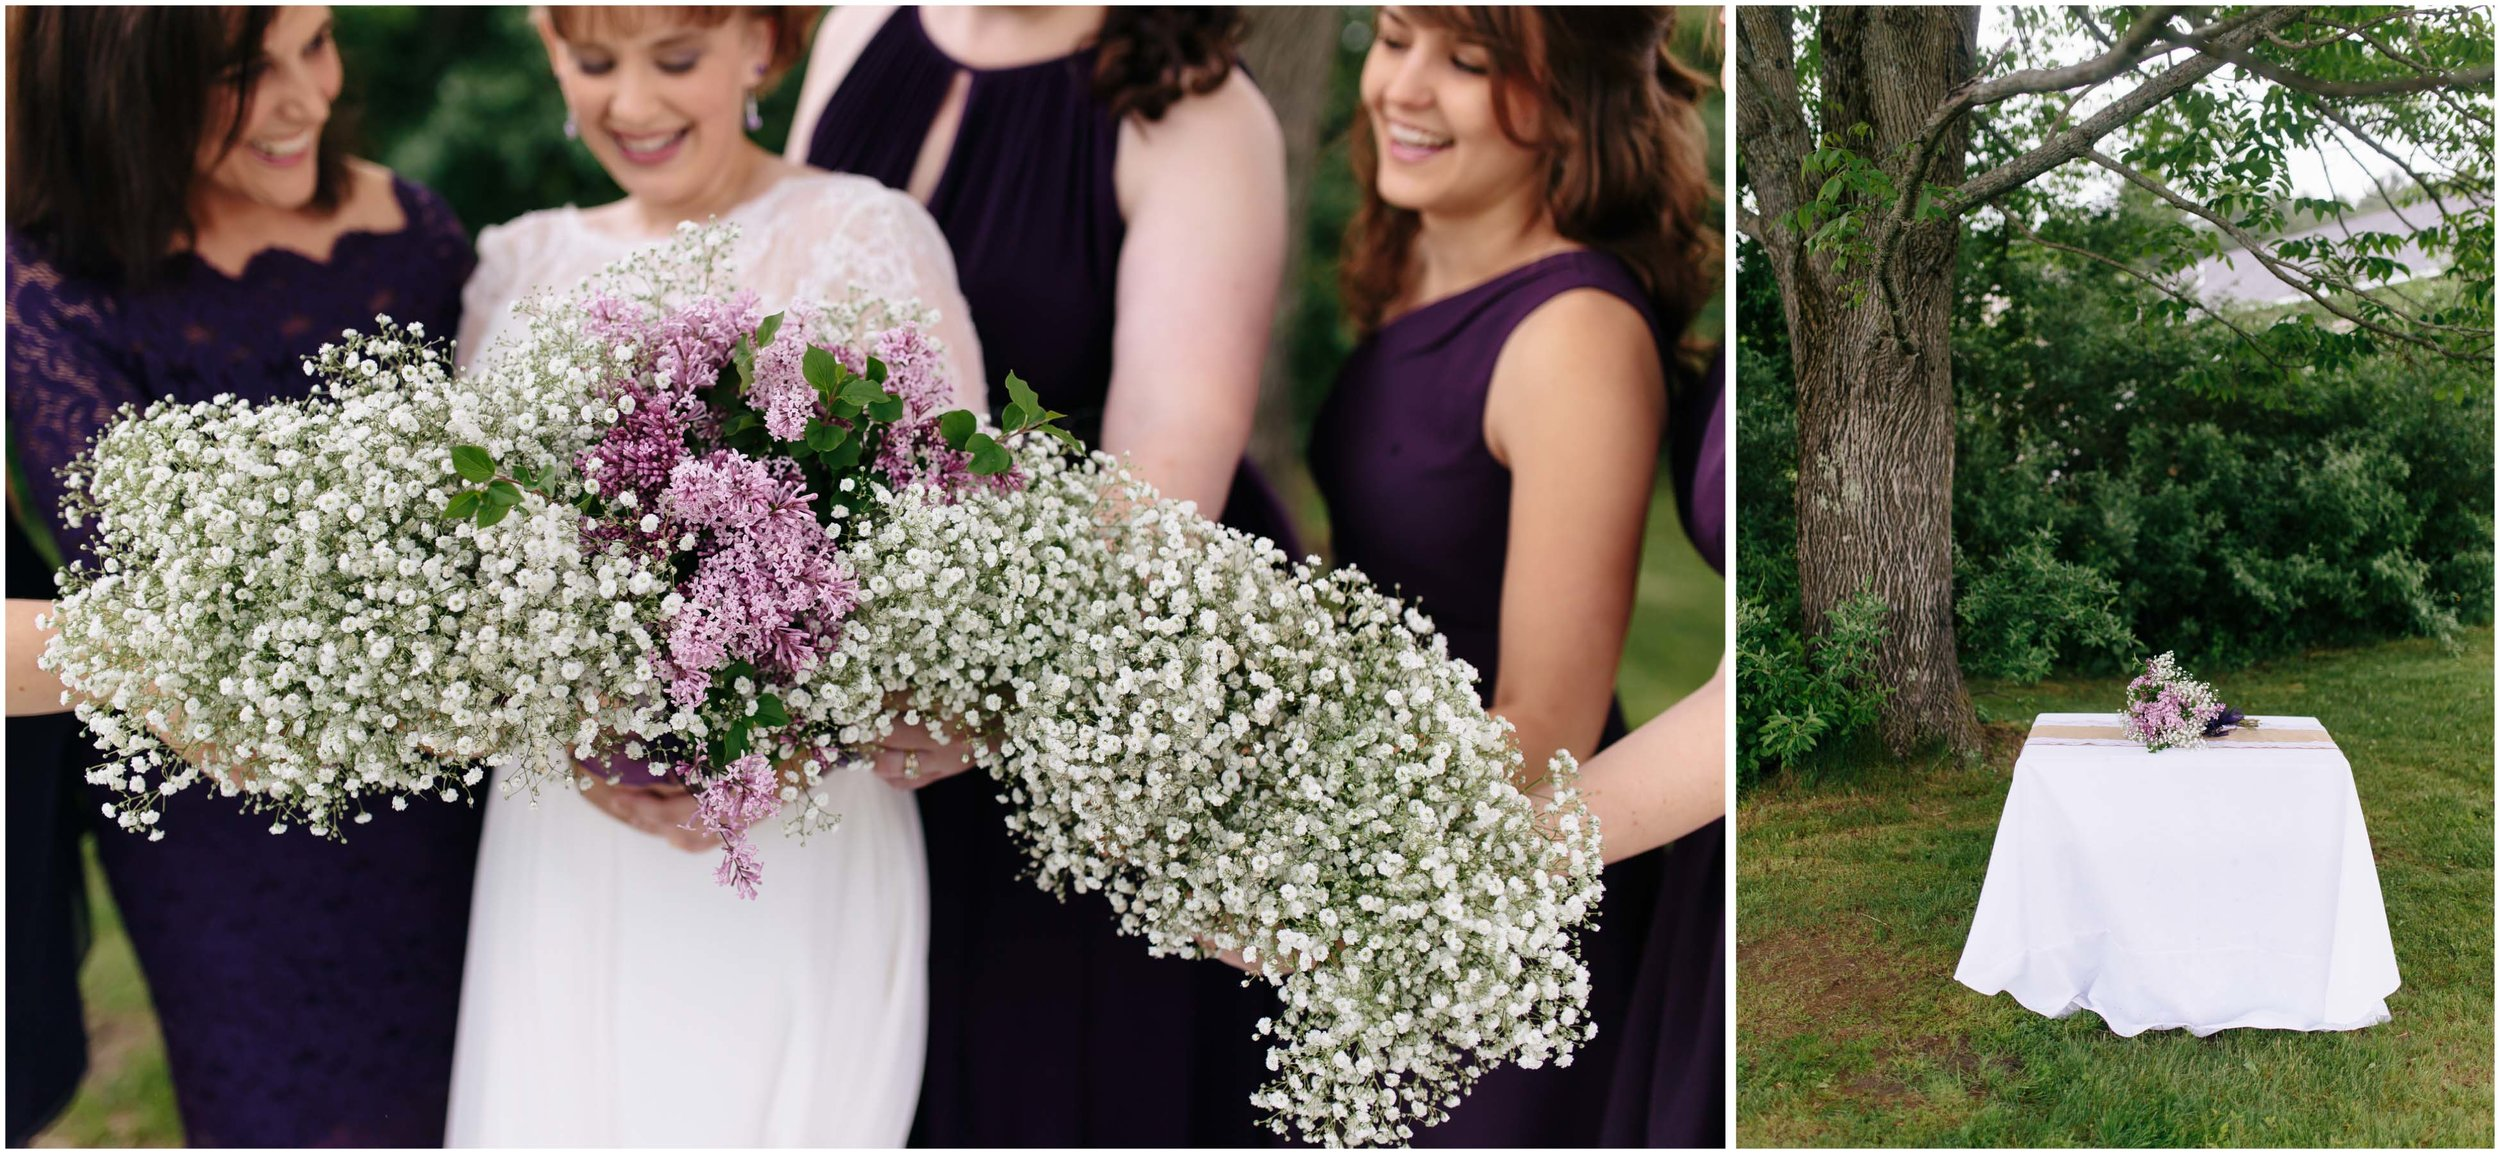 Charming Massachusetts countryside journalistic wedding by Ashleigh Laureen Photography - bride and bridesmaids